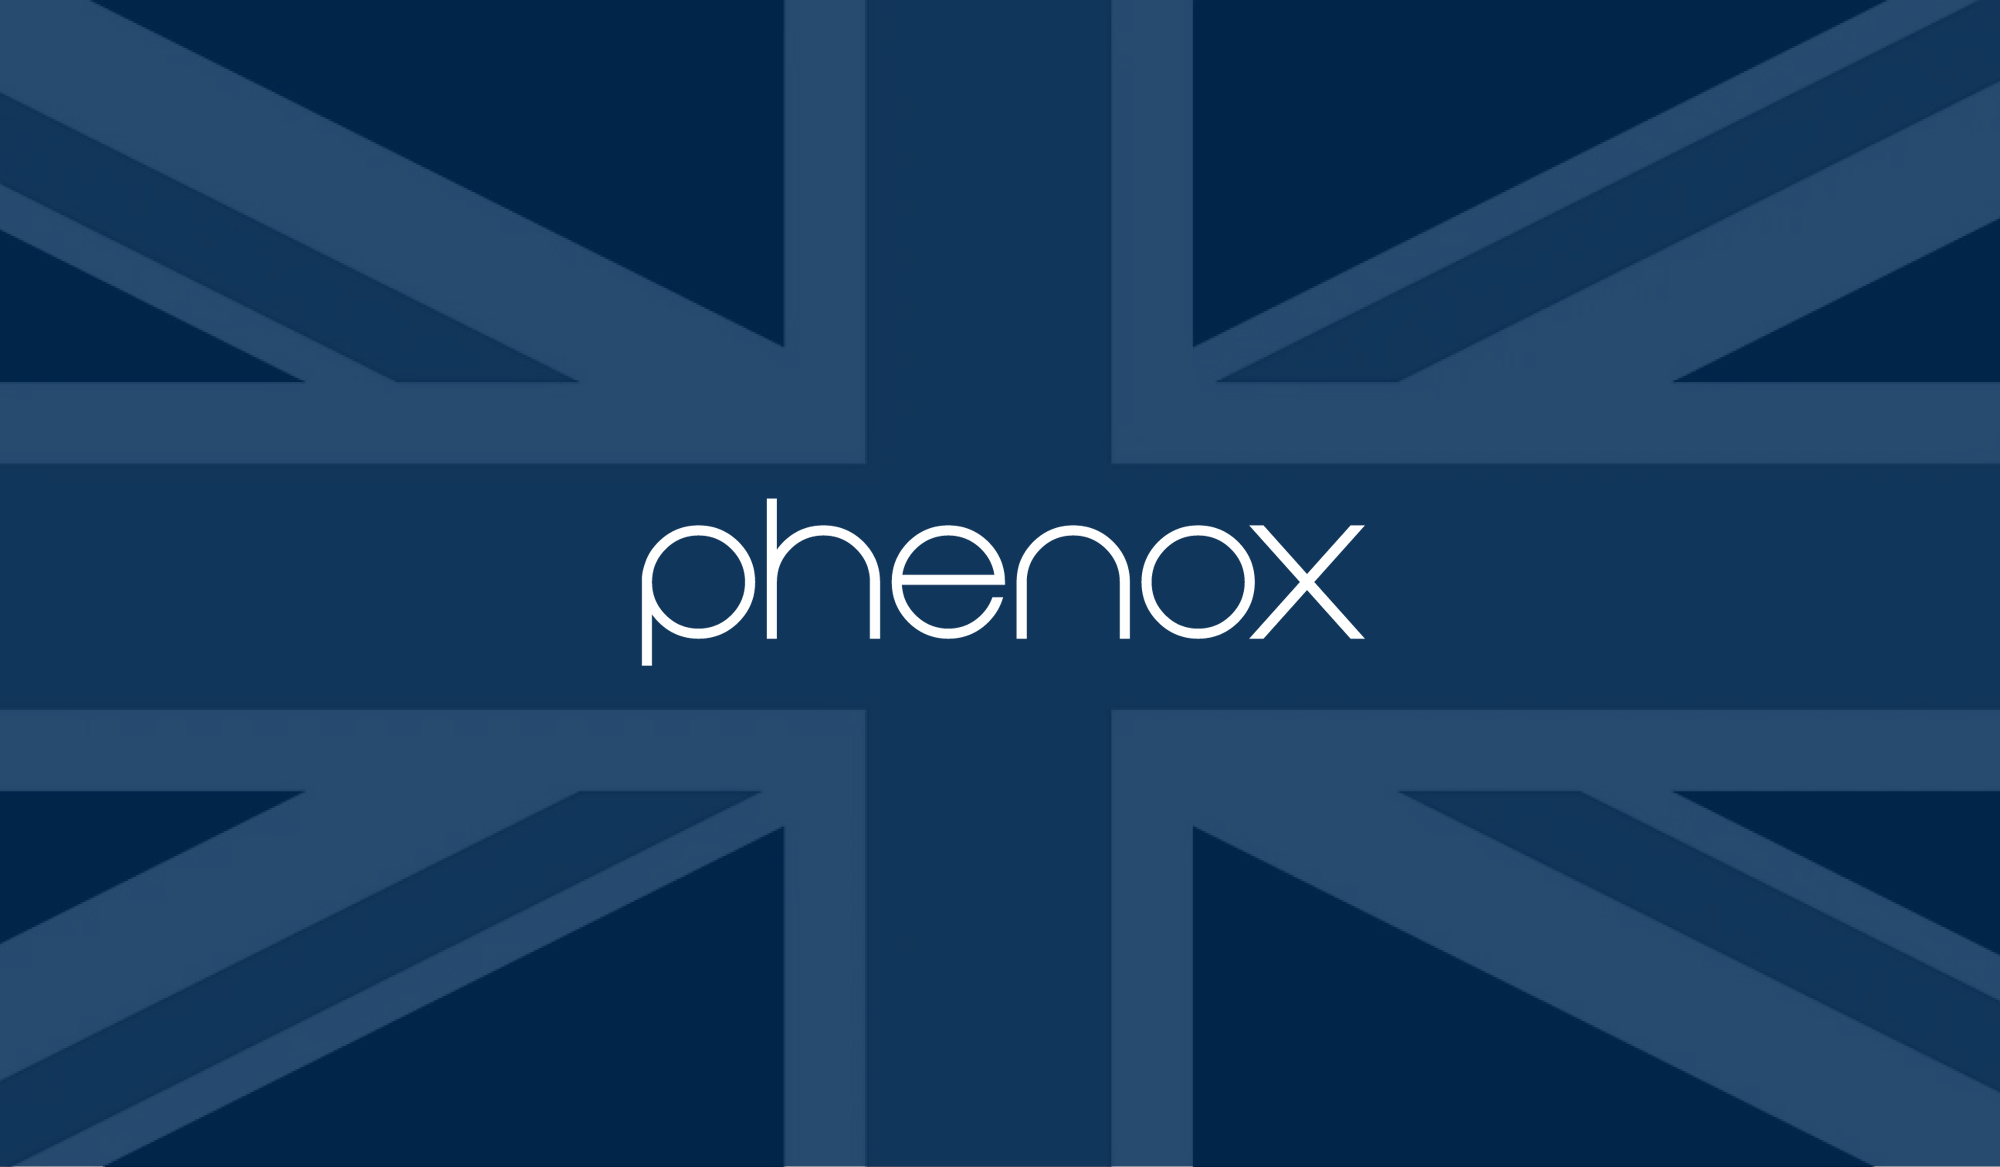 phenox GmbH expands with opening of new UK office